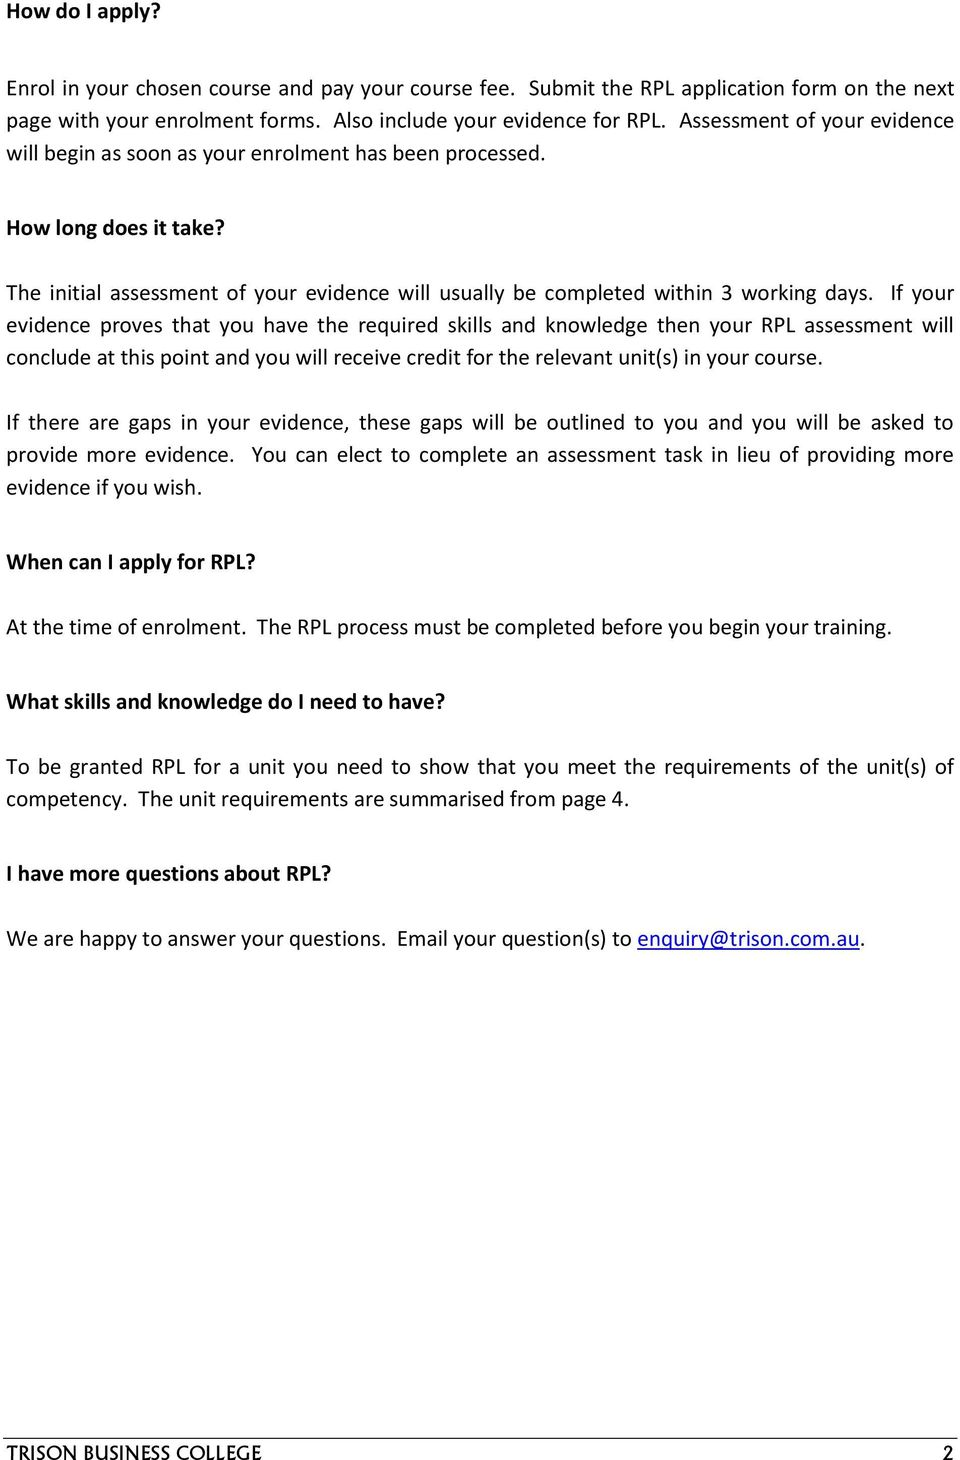 If your evidence proves that you have the required skills and knowledge then your RPL assessment will conclude at this point and you will receive credit for the relevant unit(s) in your course.